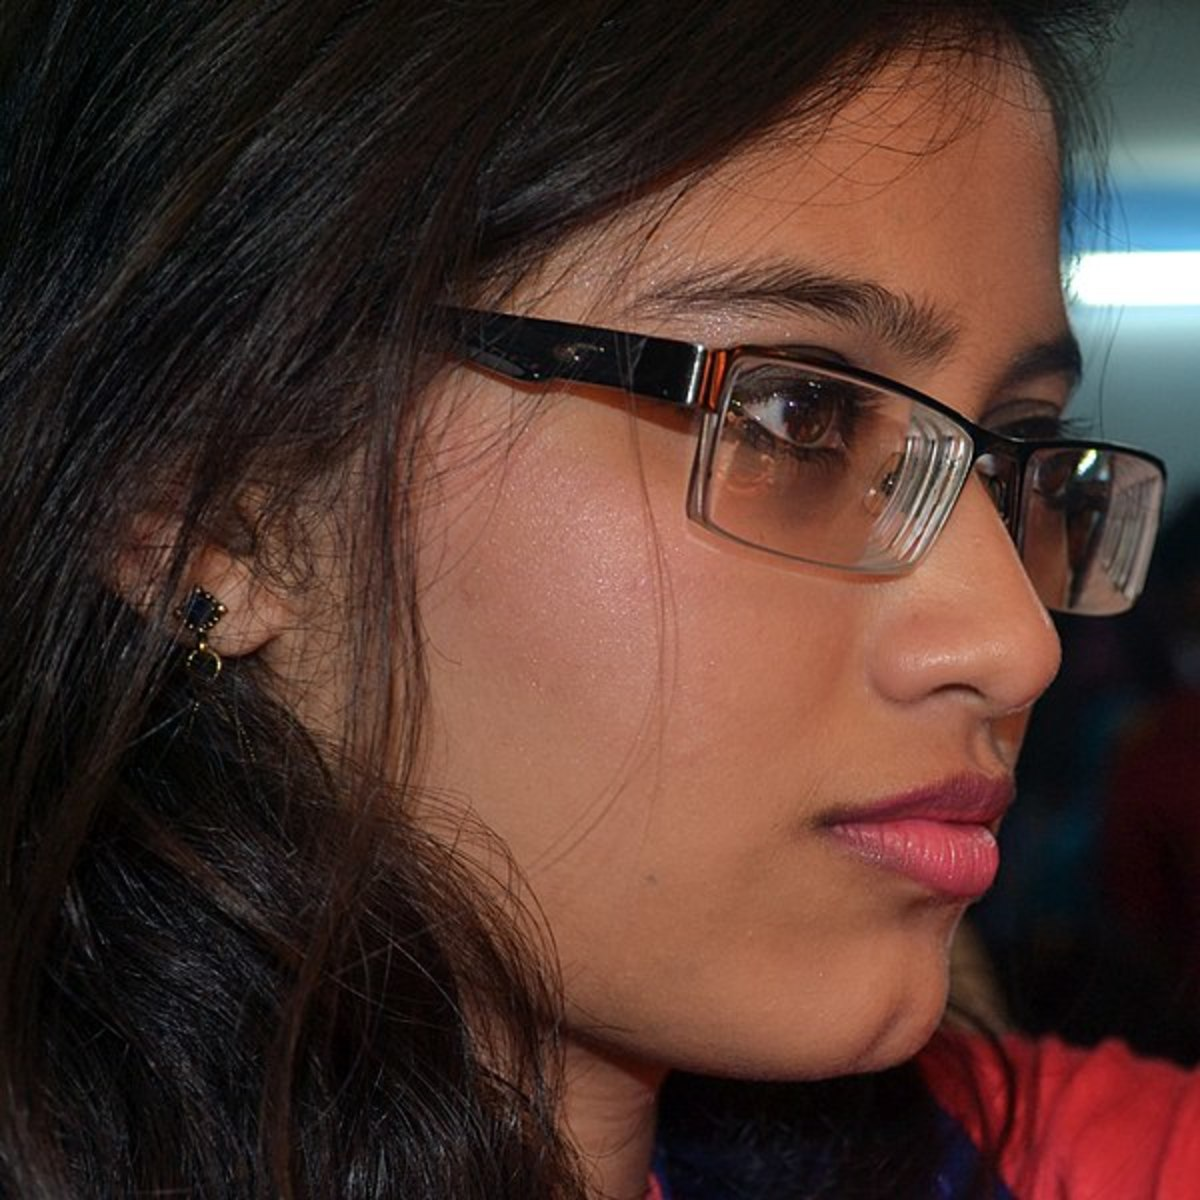 Bangladeshi woman wearing glasses--this Non-Working Eyeglasses thing is now going global.